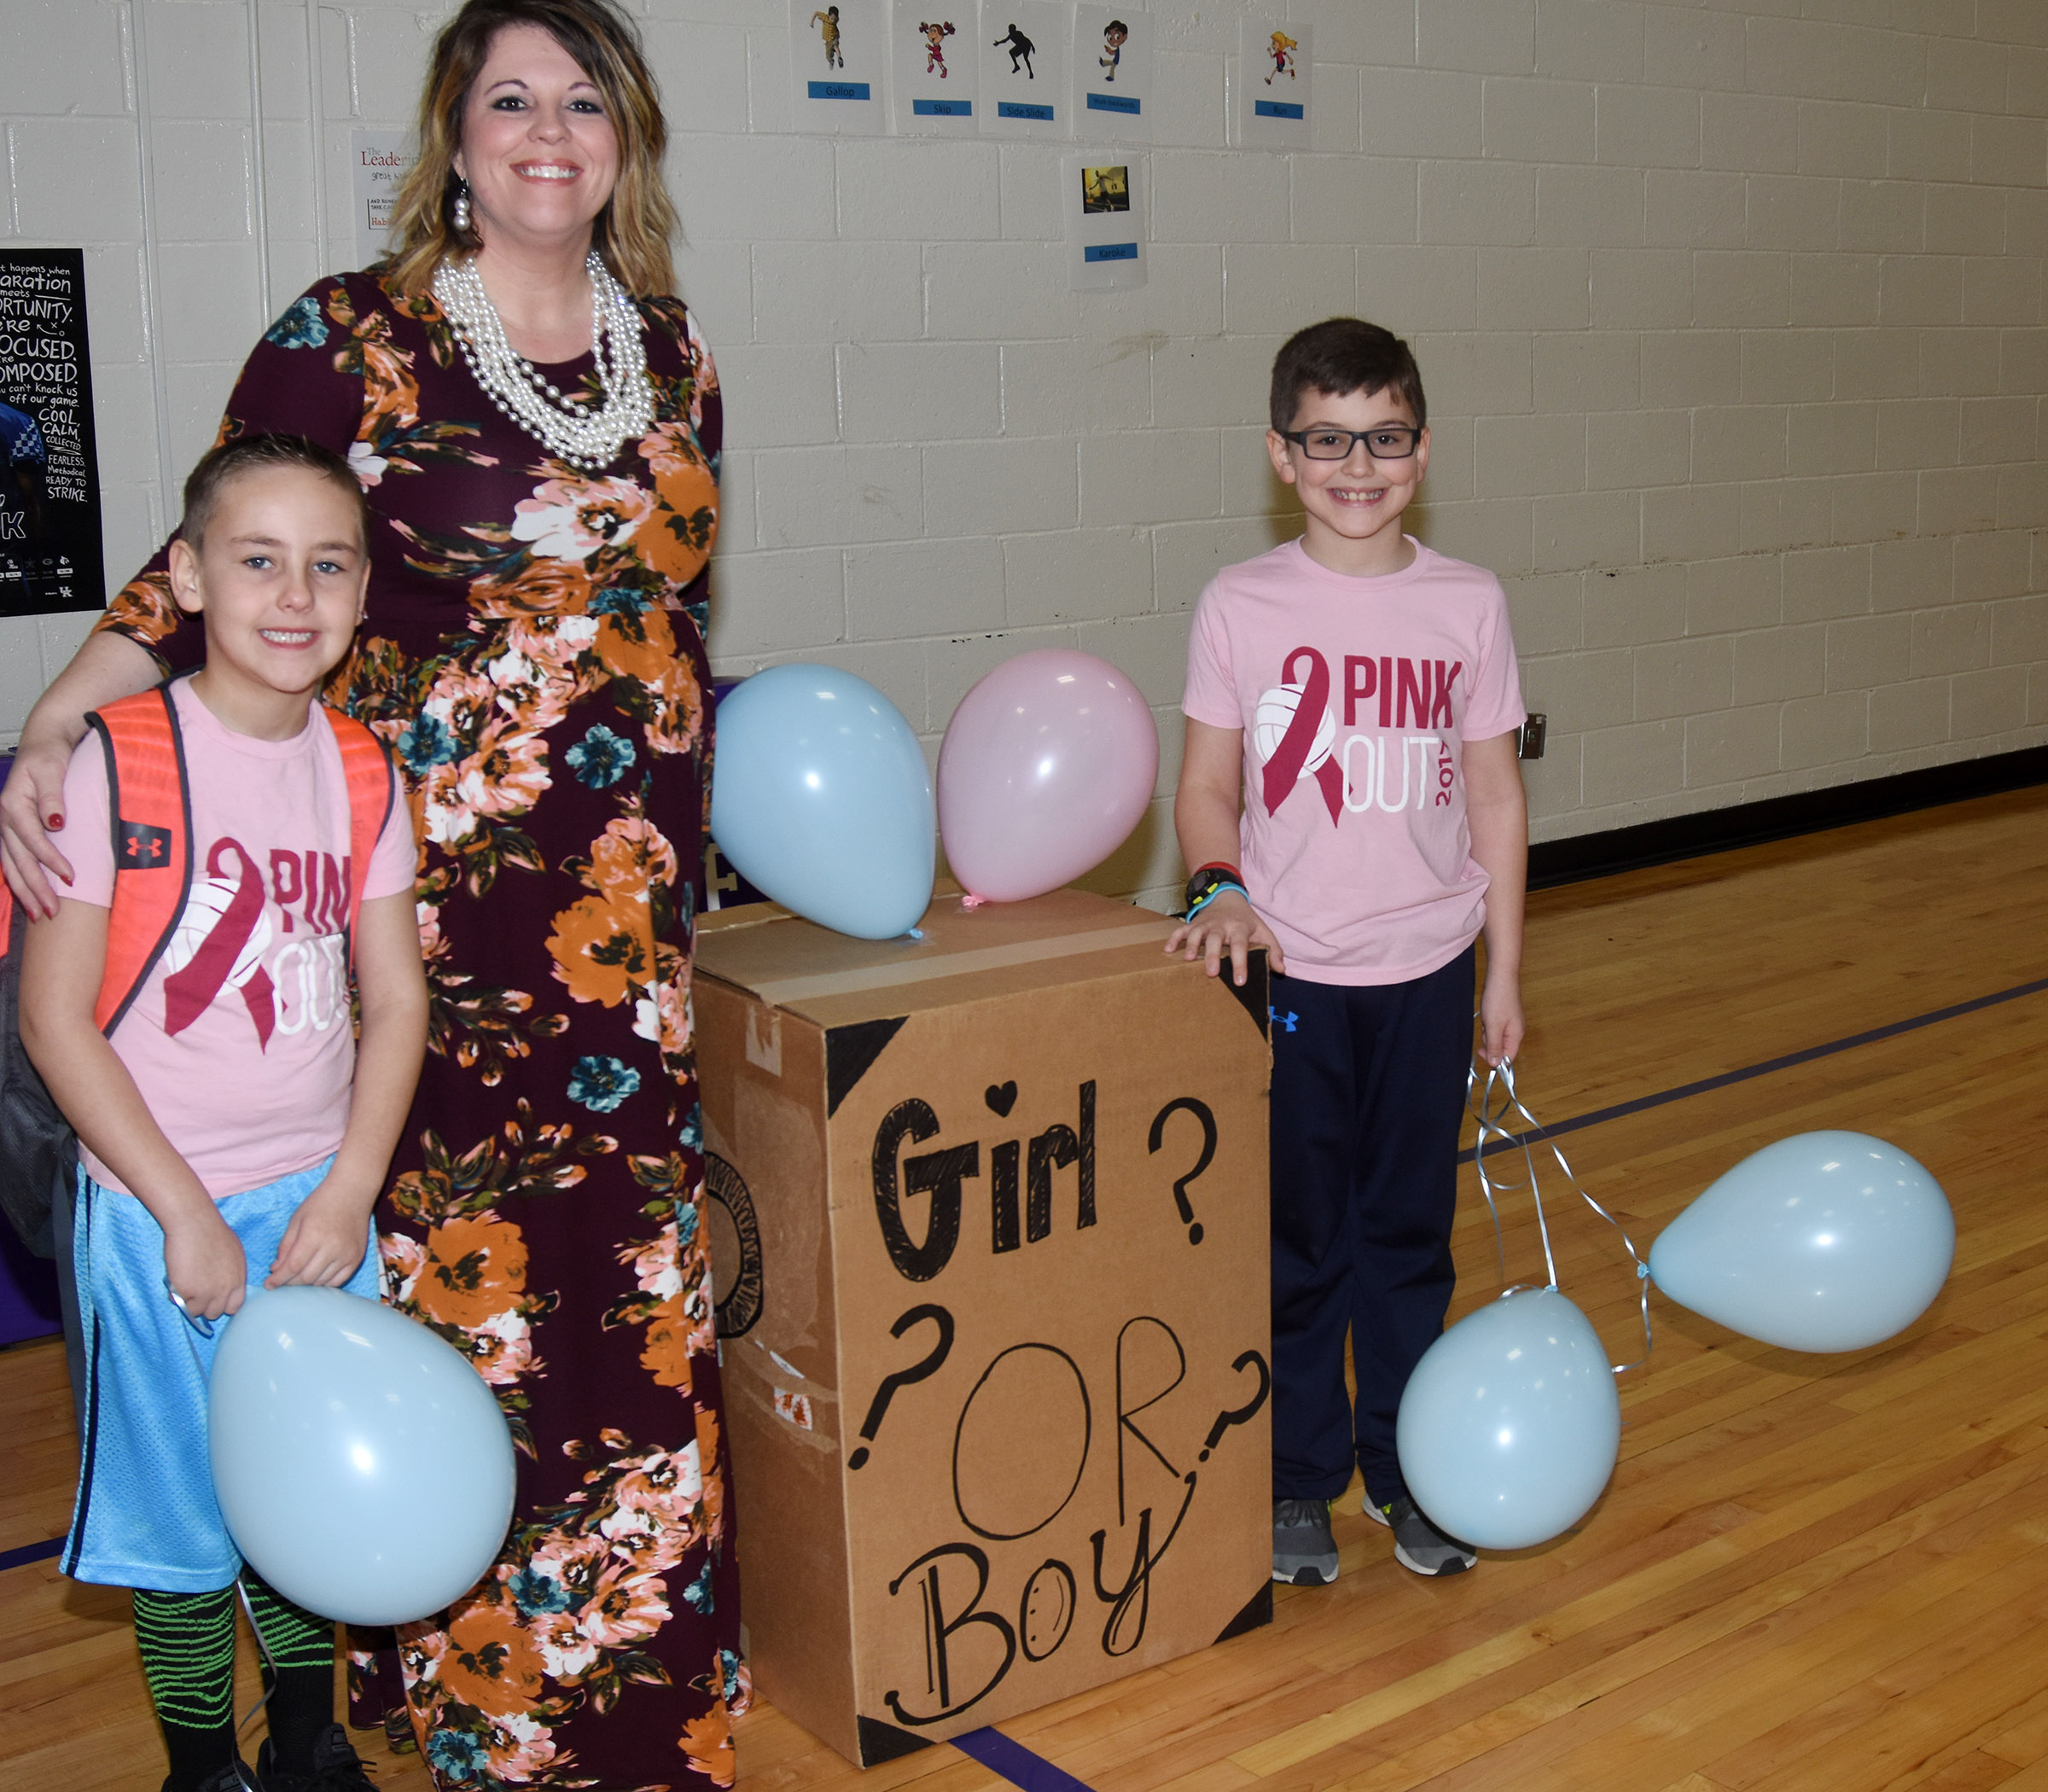 CES Principal Elisha Rhodes had some help revealing the gender of her baby, due in August. Rhodes is expecting her third boy. She is pictured with her sons Braxton, at left, a first-grader, and Tye, a third-grader.